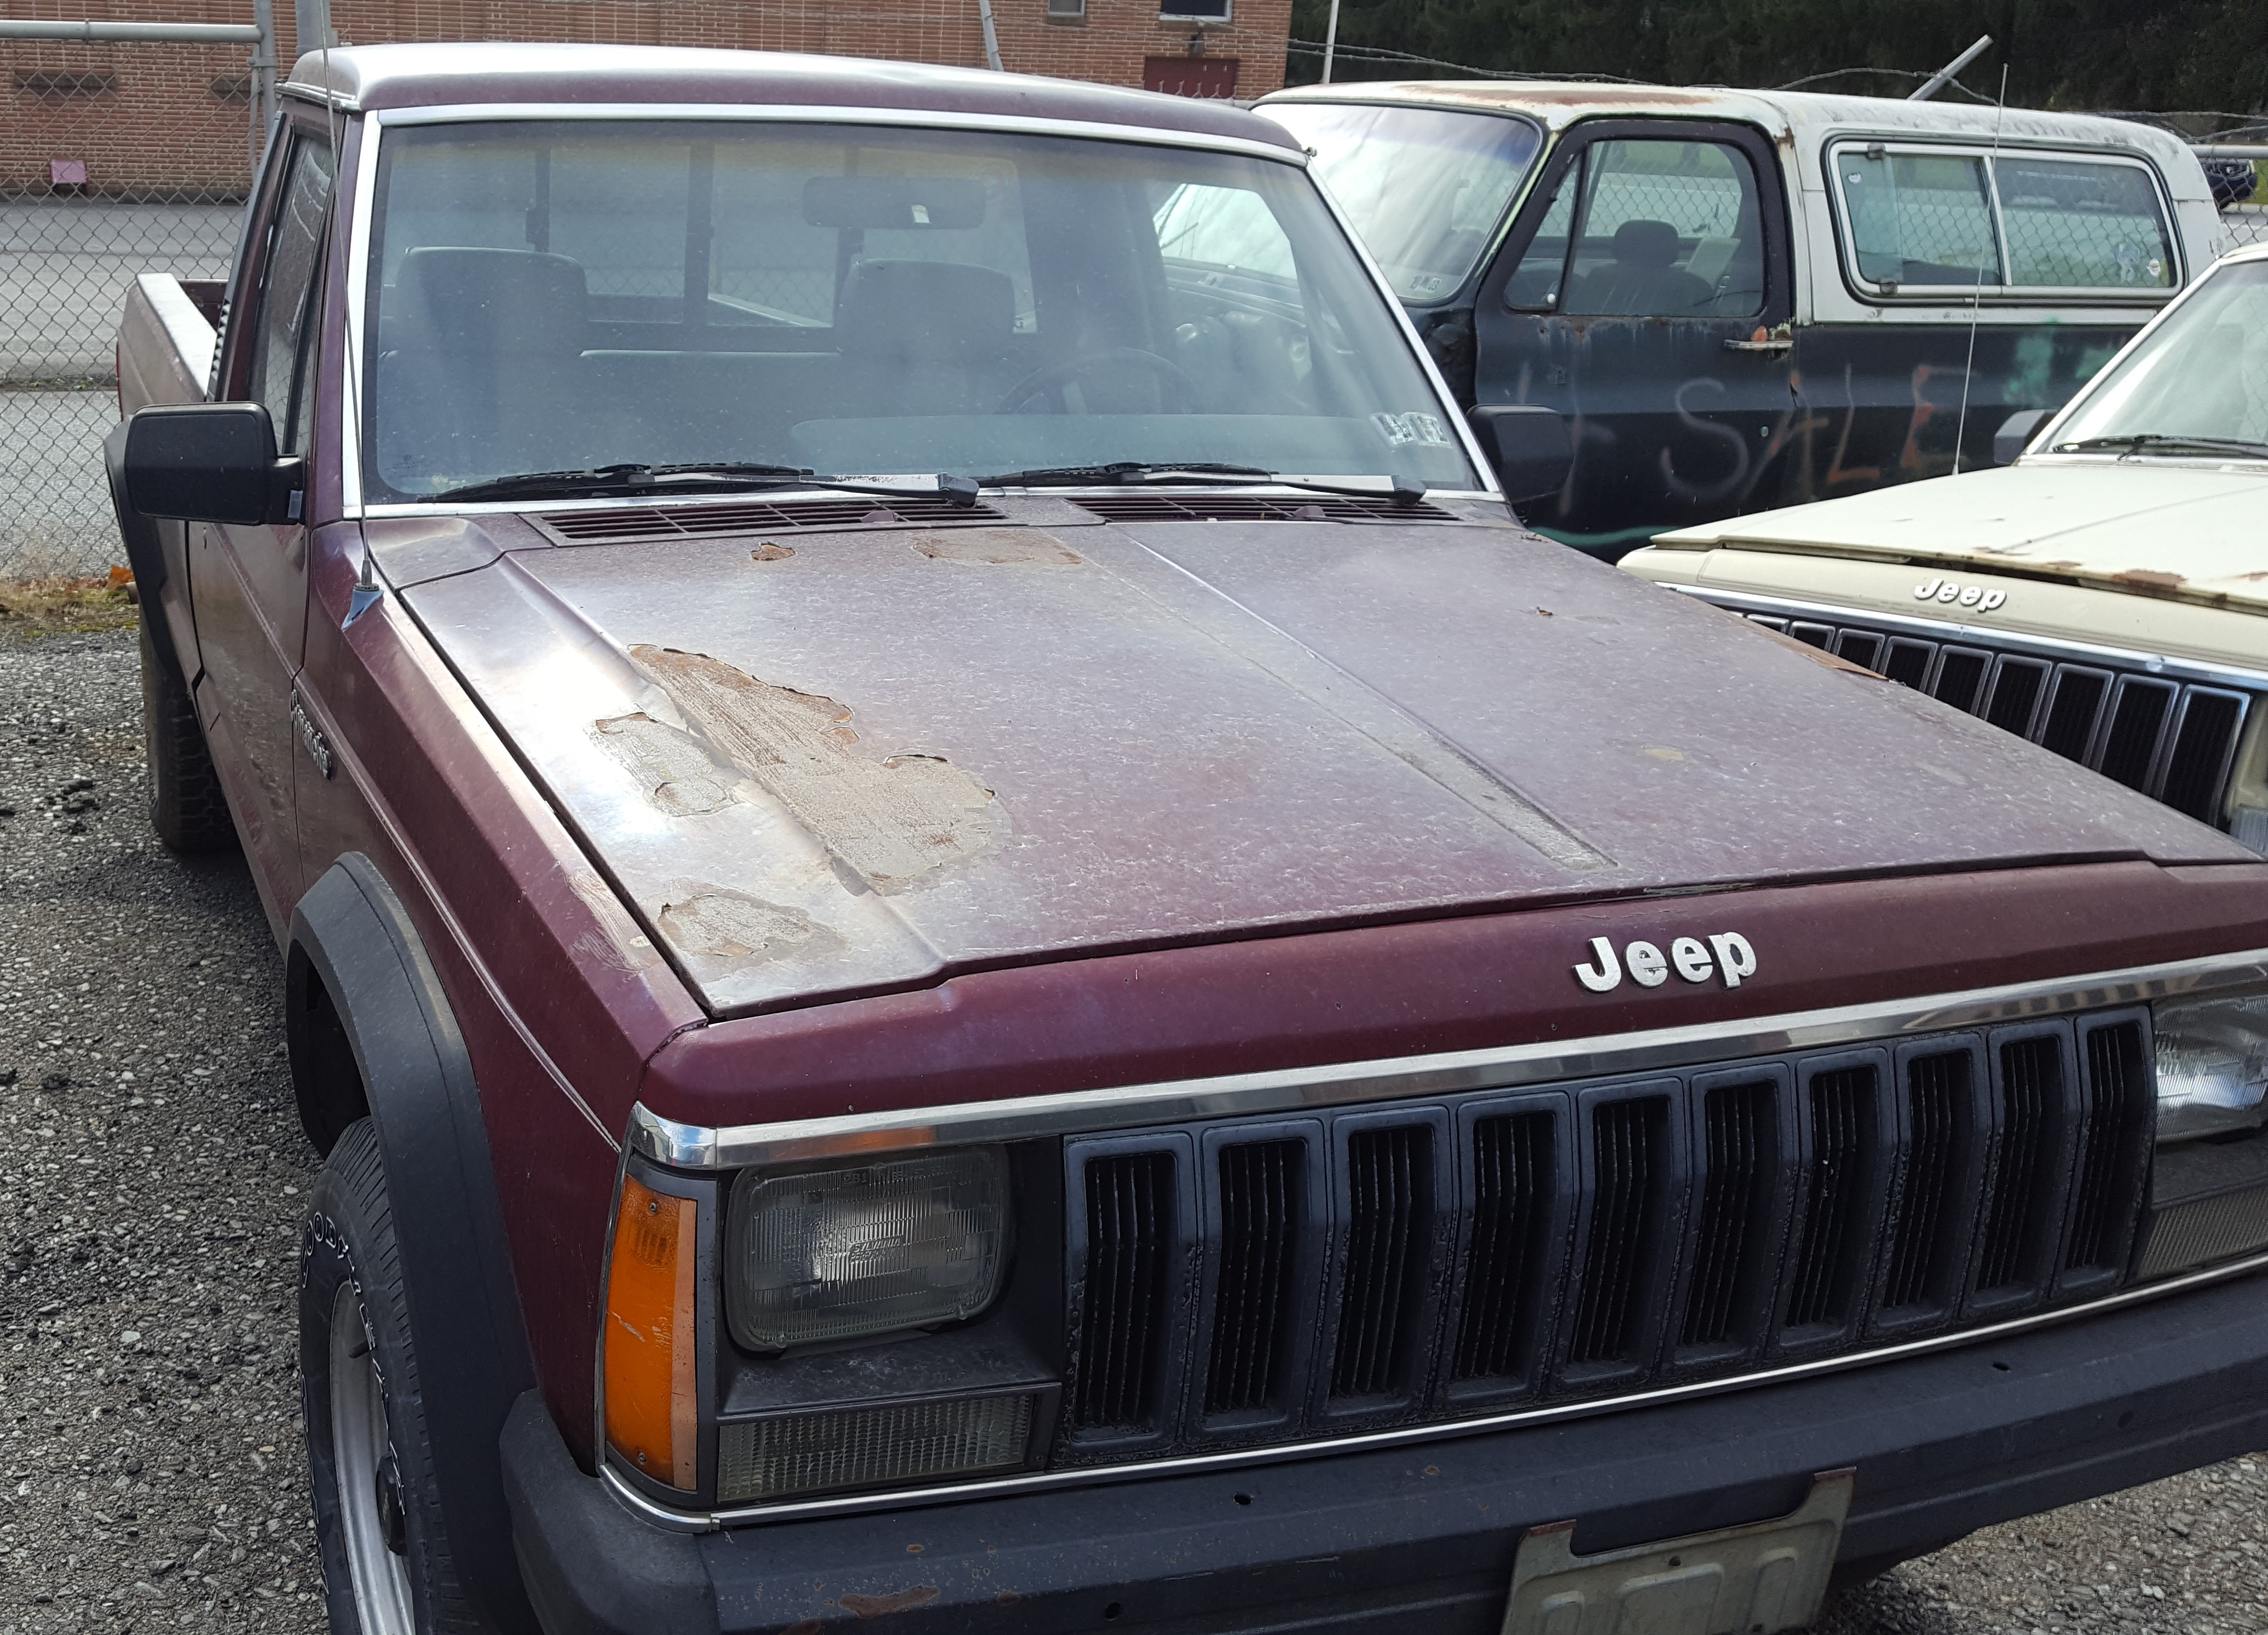 miles on an fire mj for jeep product sale good you this and up jeepers it will need is whenever in the fair xxx market has to condition motor comanche runs that